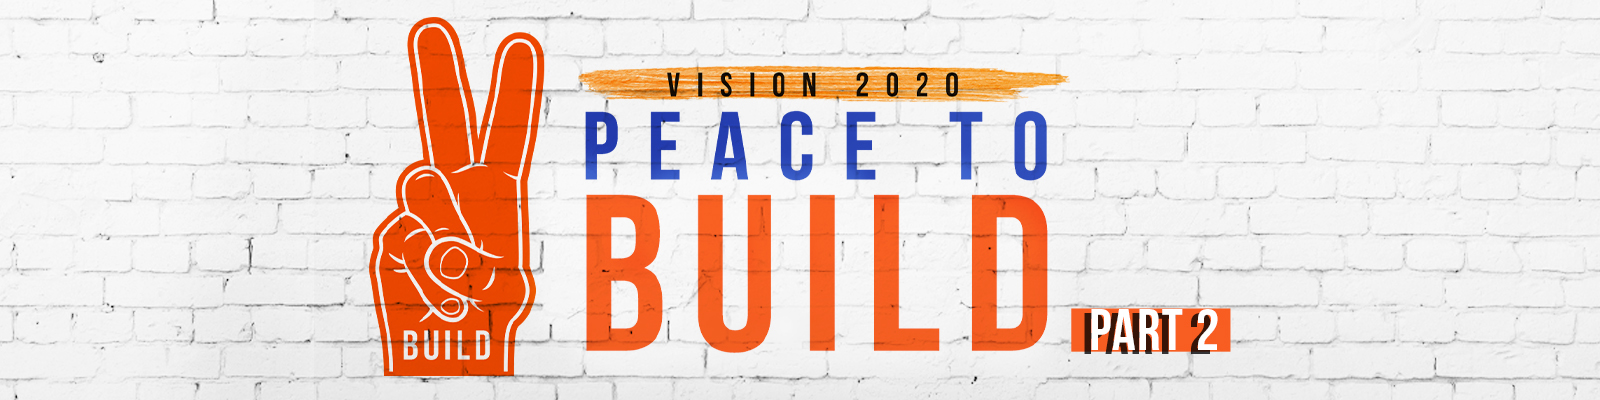 Peace to BUILD Part 2 (Vision 2020)